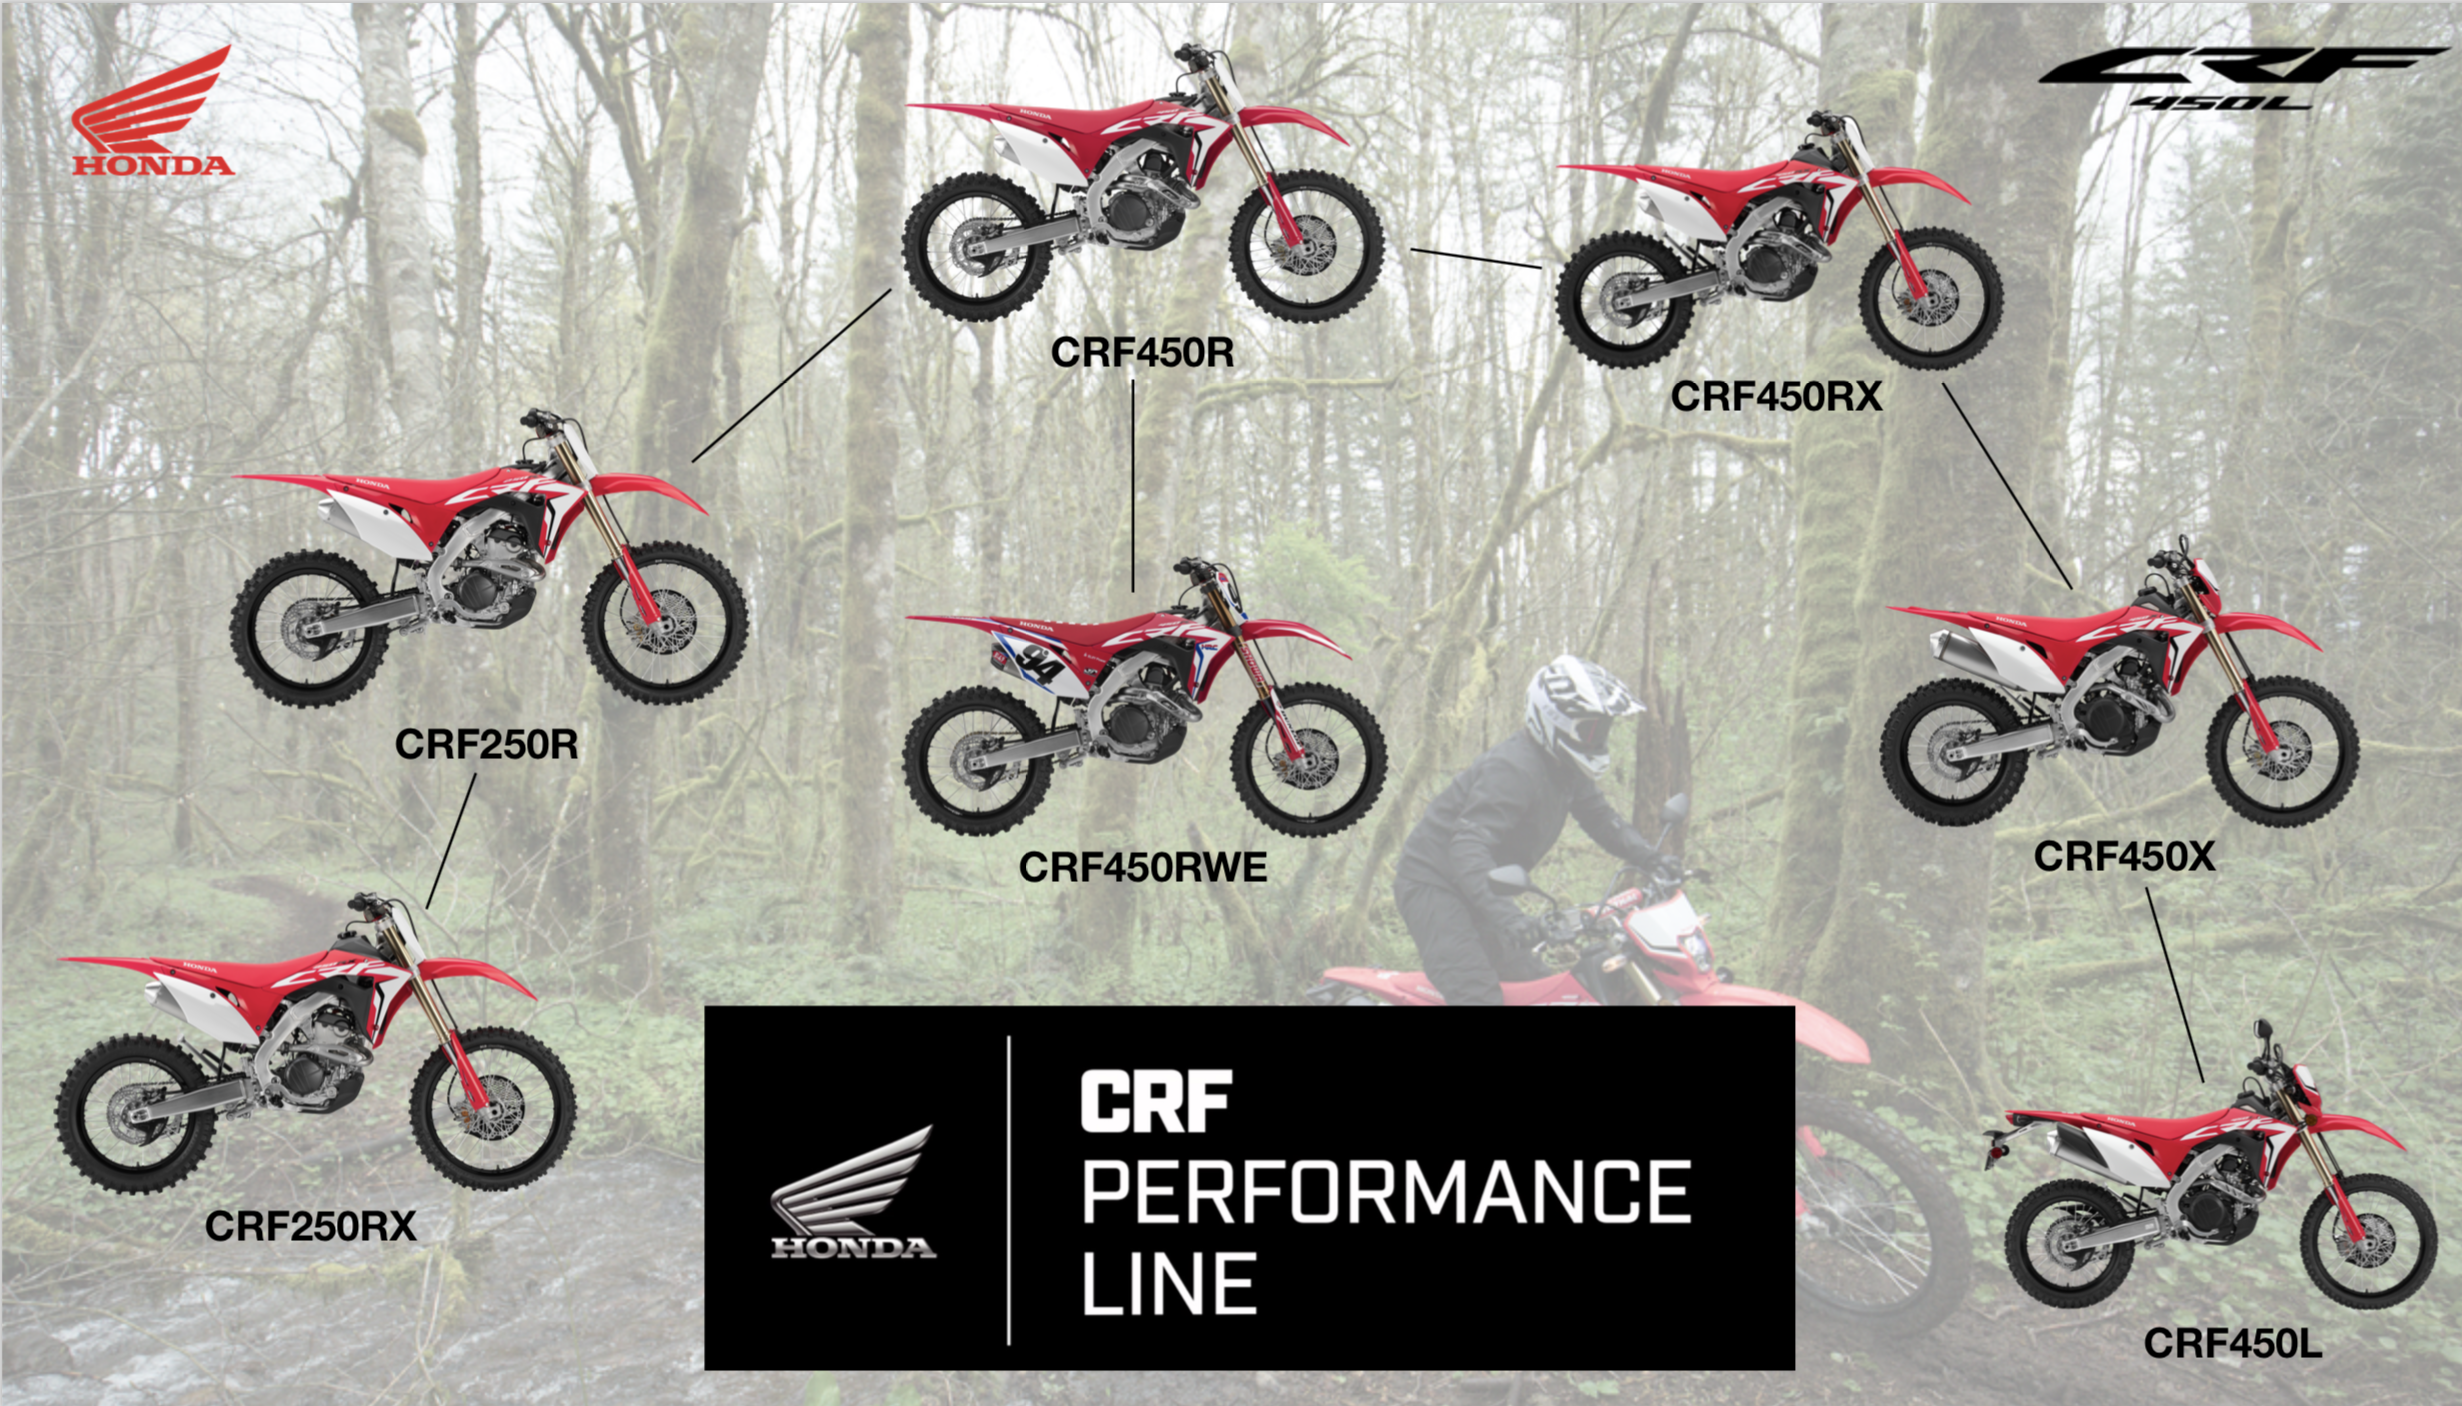 2019 Honda CRF450L first ride review - RevZilla